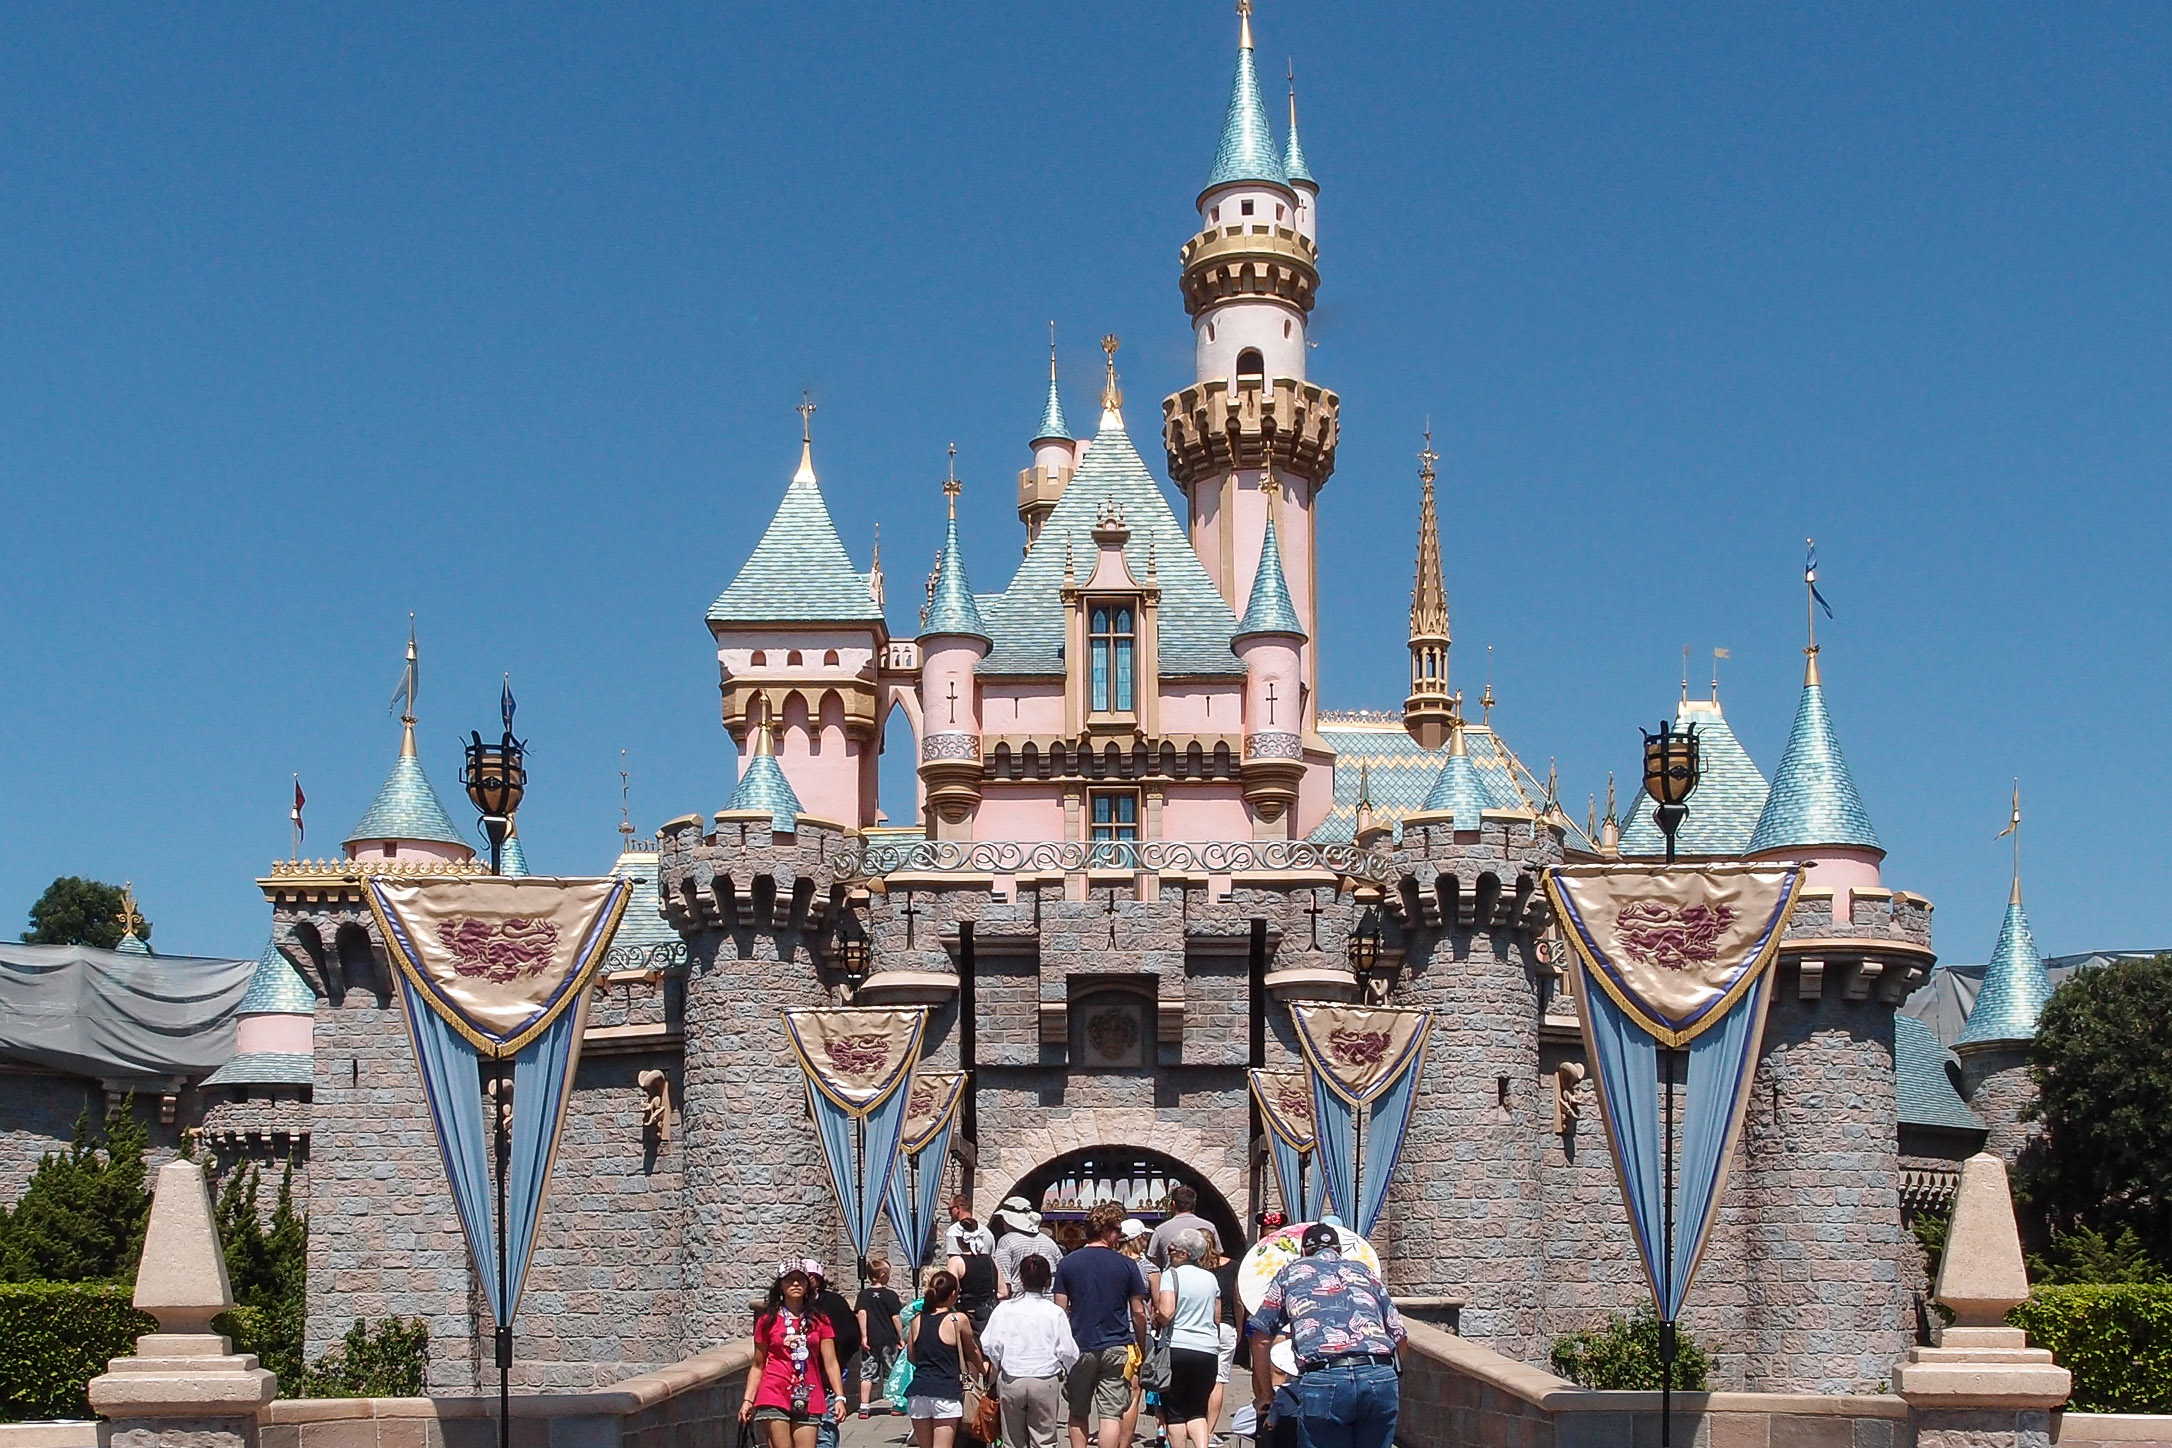 Disneyland California USA Princess Castle Pink Tower Blue Turret tourist destination